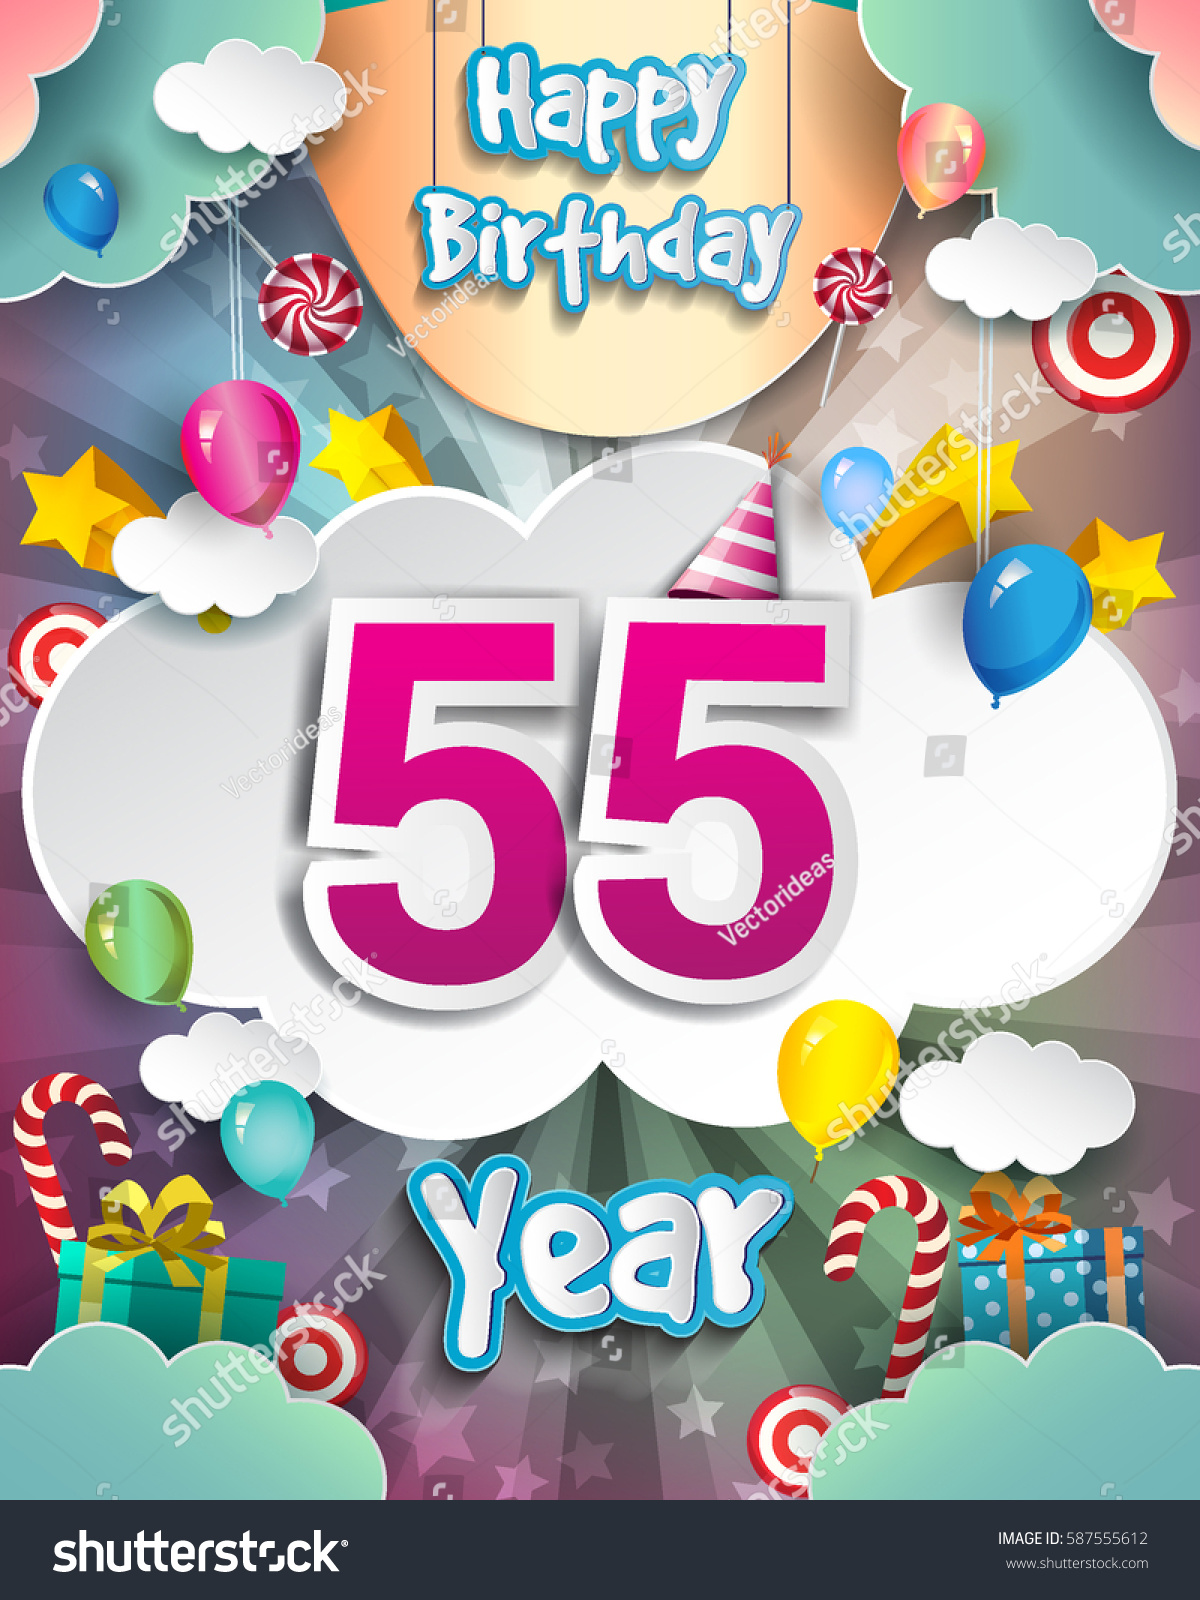 55th Birthday Celebration Greeting Card Design With Clouds And Balloons Vector Elements For The